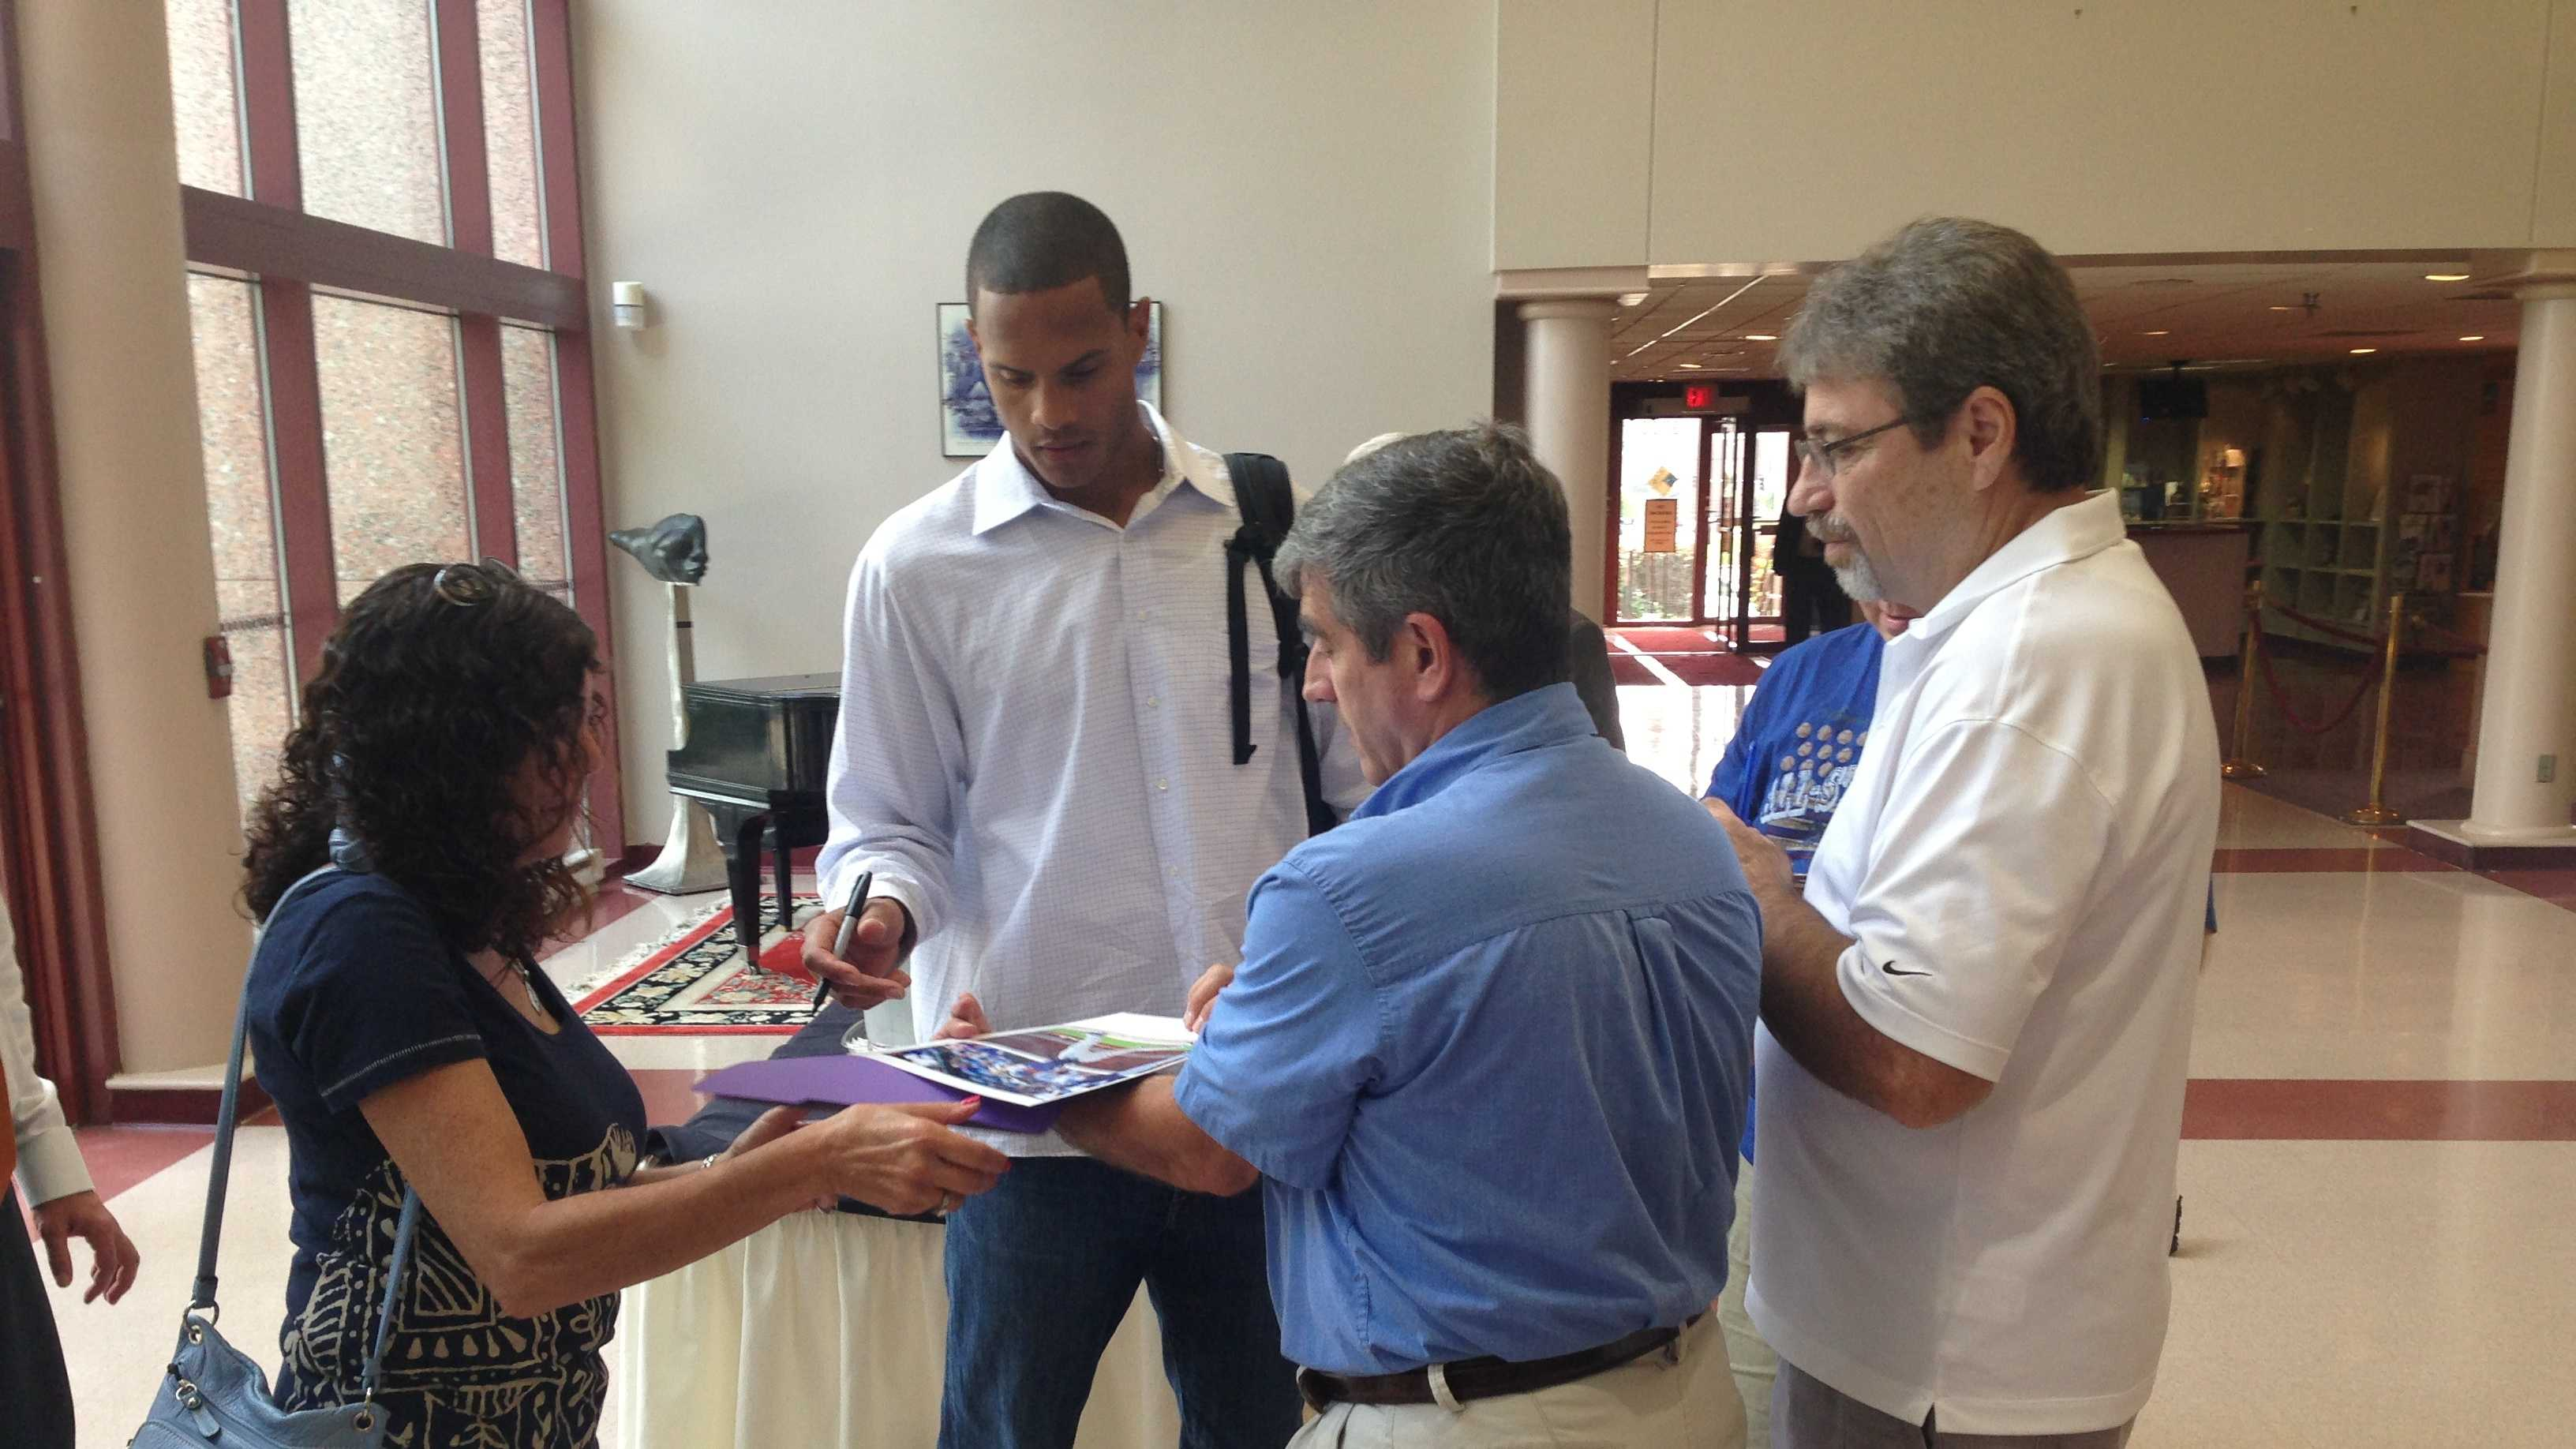 Maxwell signs autographs while participating in a luncheon hosted by the Negro Leagues Baseball Museum at the Bruce R. Watkins Cultural Heritage Center.  August 2013.